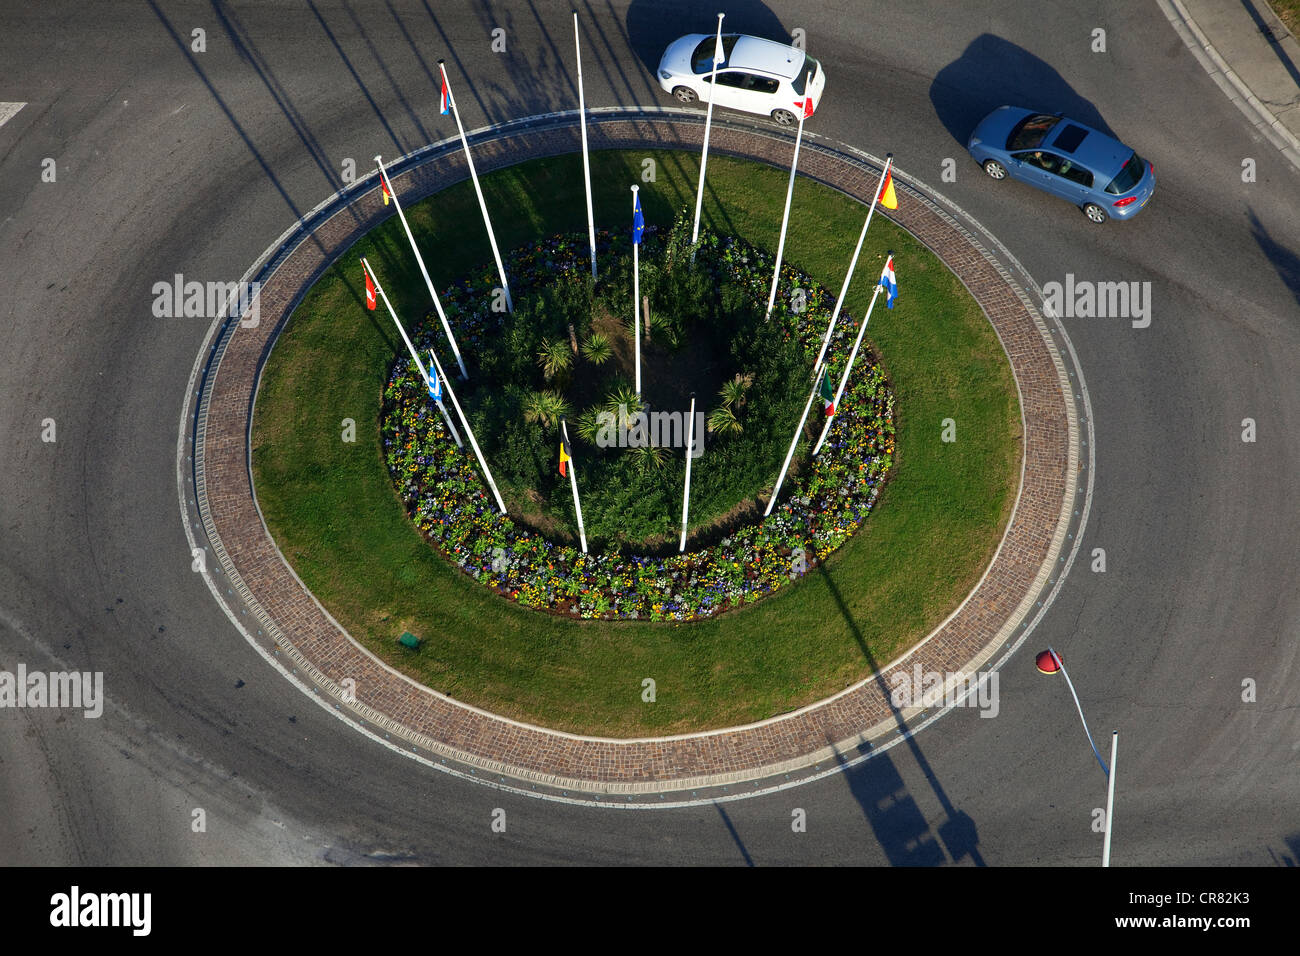 France, Bouches du Rhone, Marignane, roundabout flags Avenue May 8, 1945 (aerial view) - Stock Image